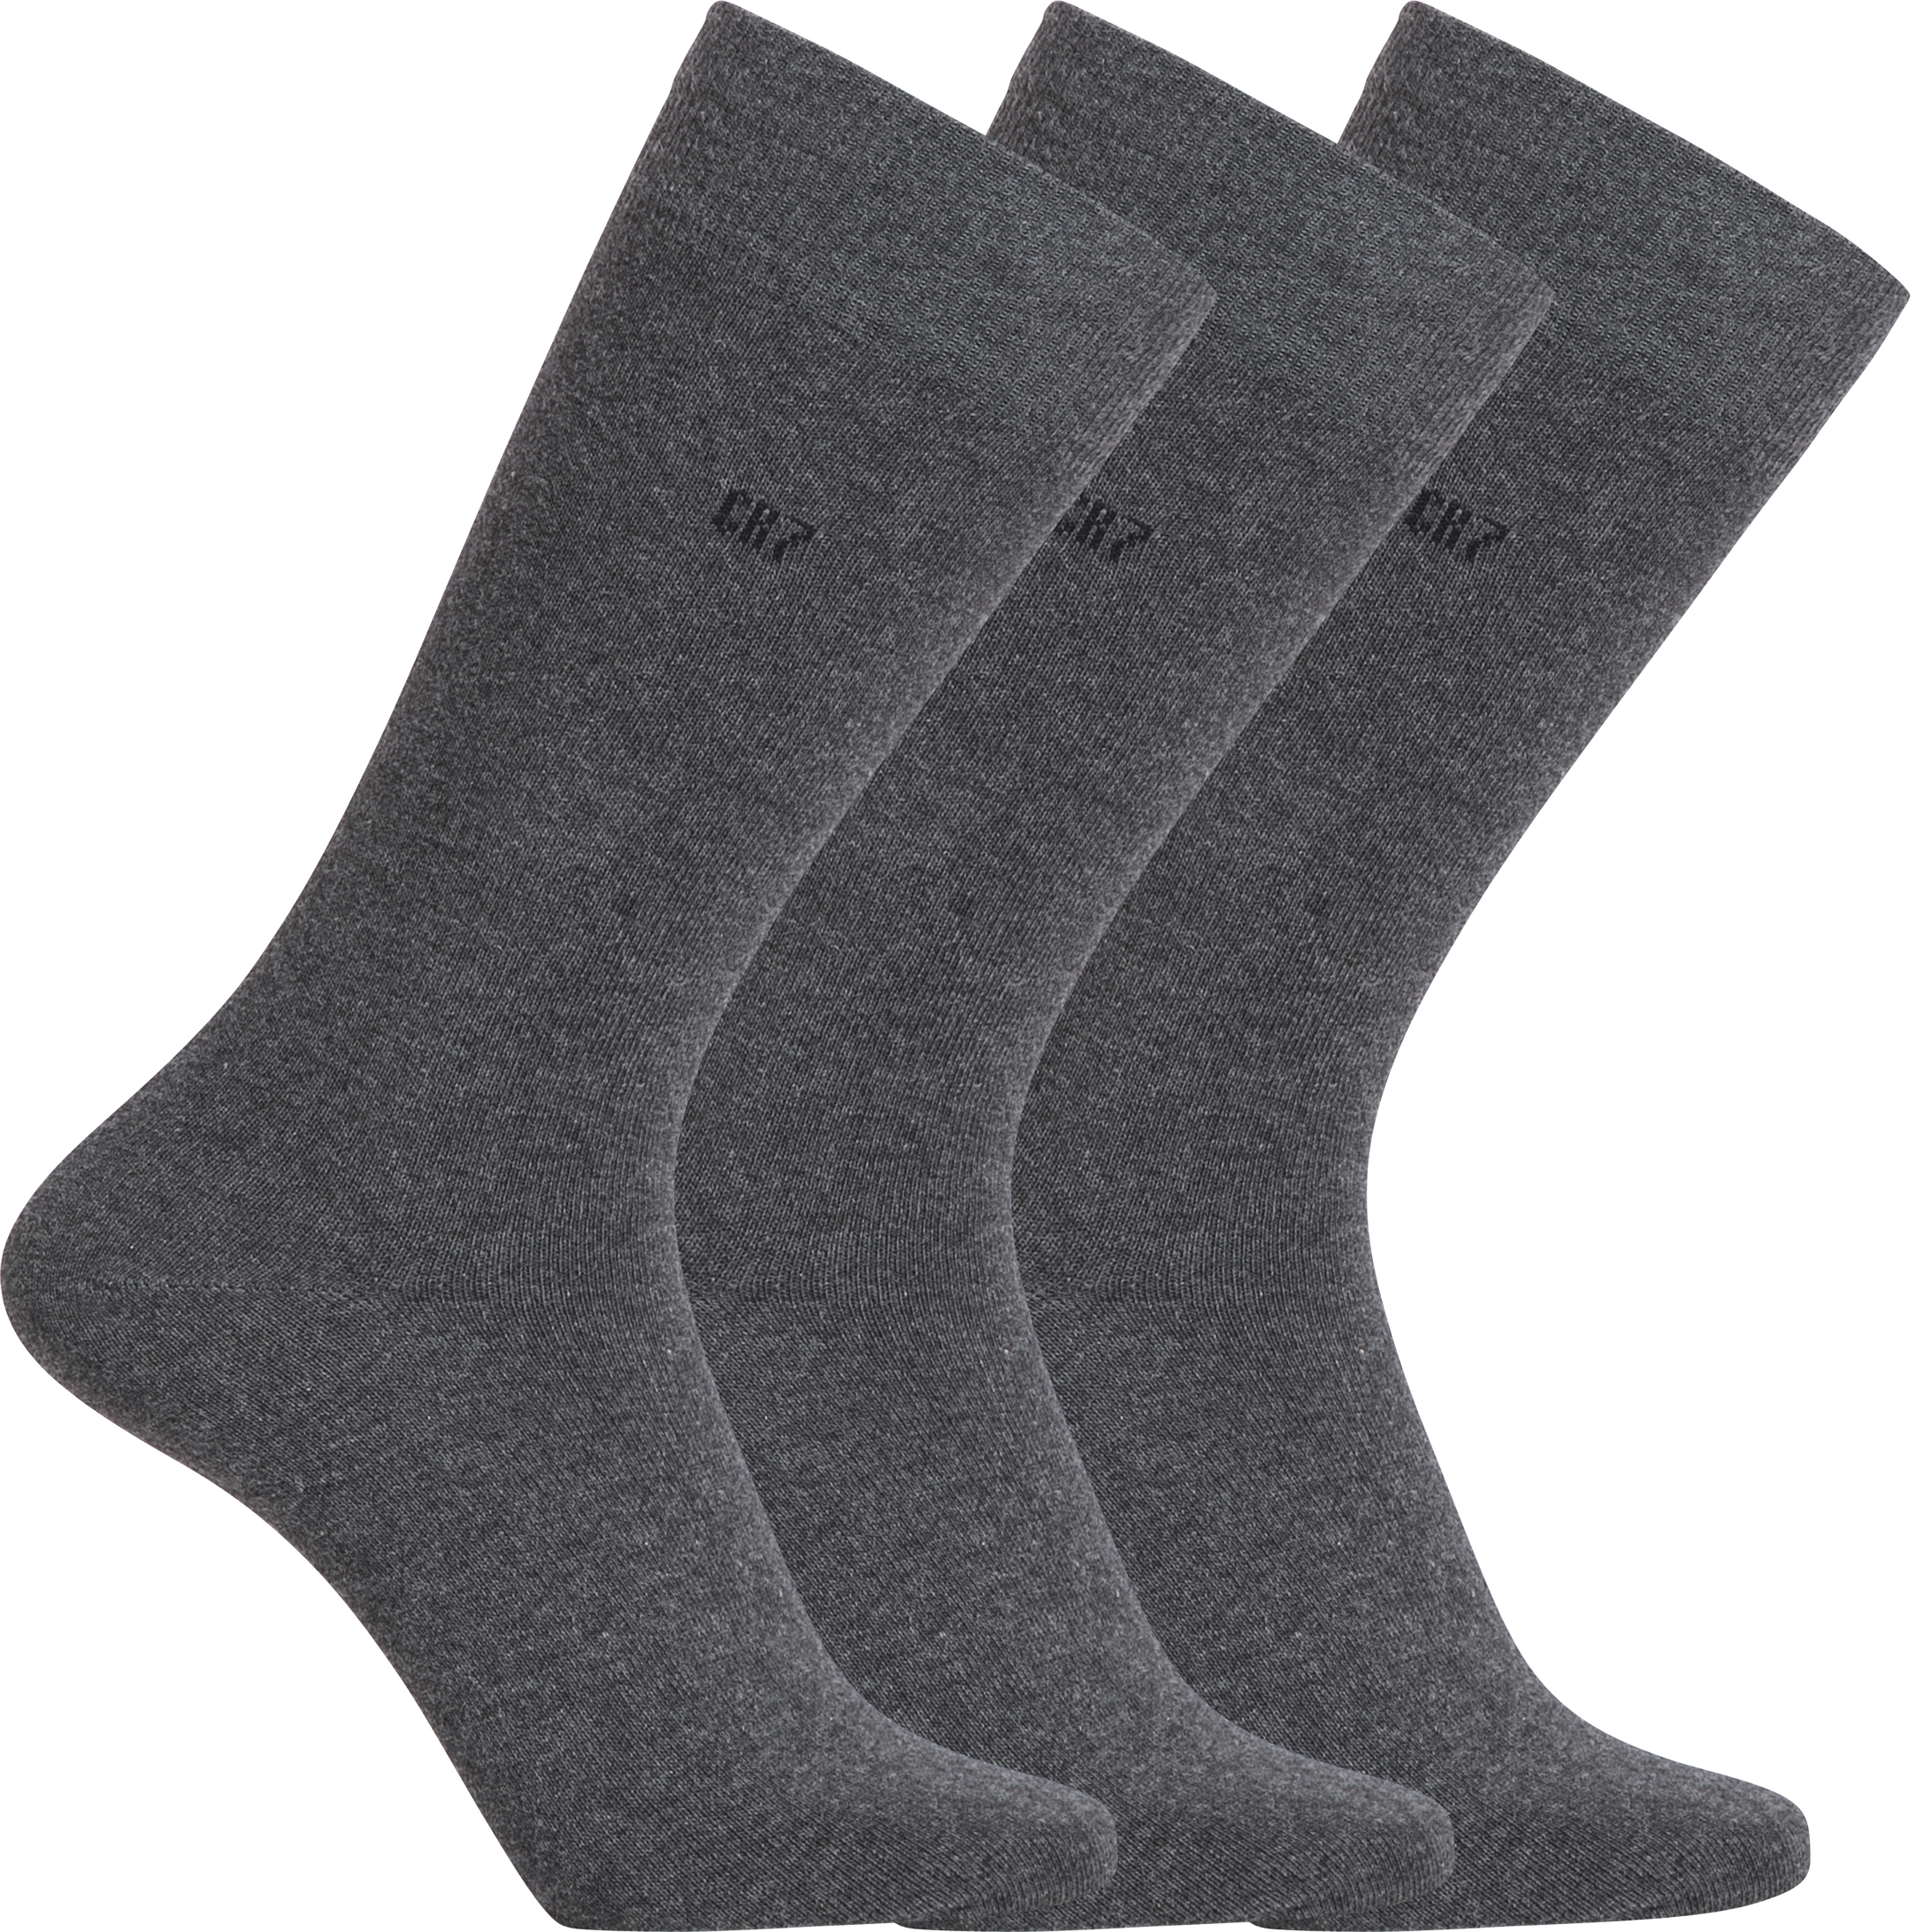 Cr7 basic socks men 3-pack - str. 40-46 fra cr7 på shopwithsocks